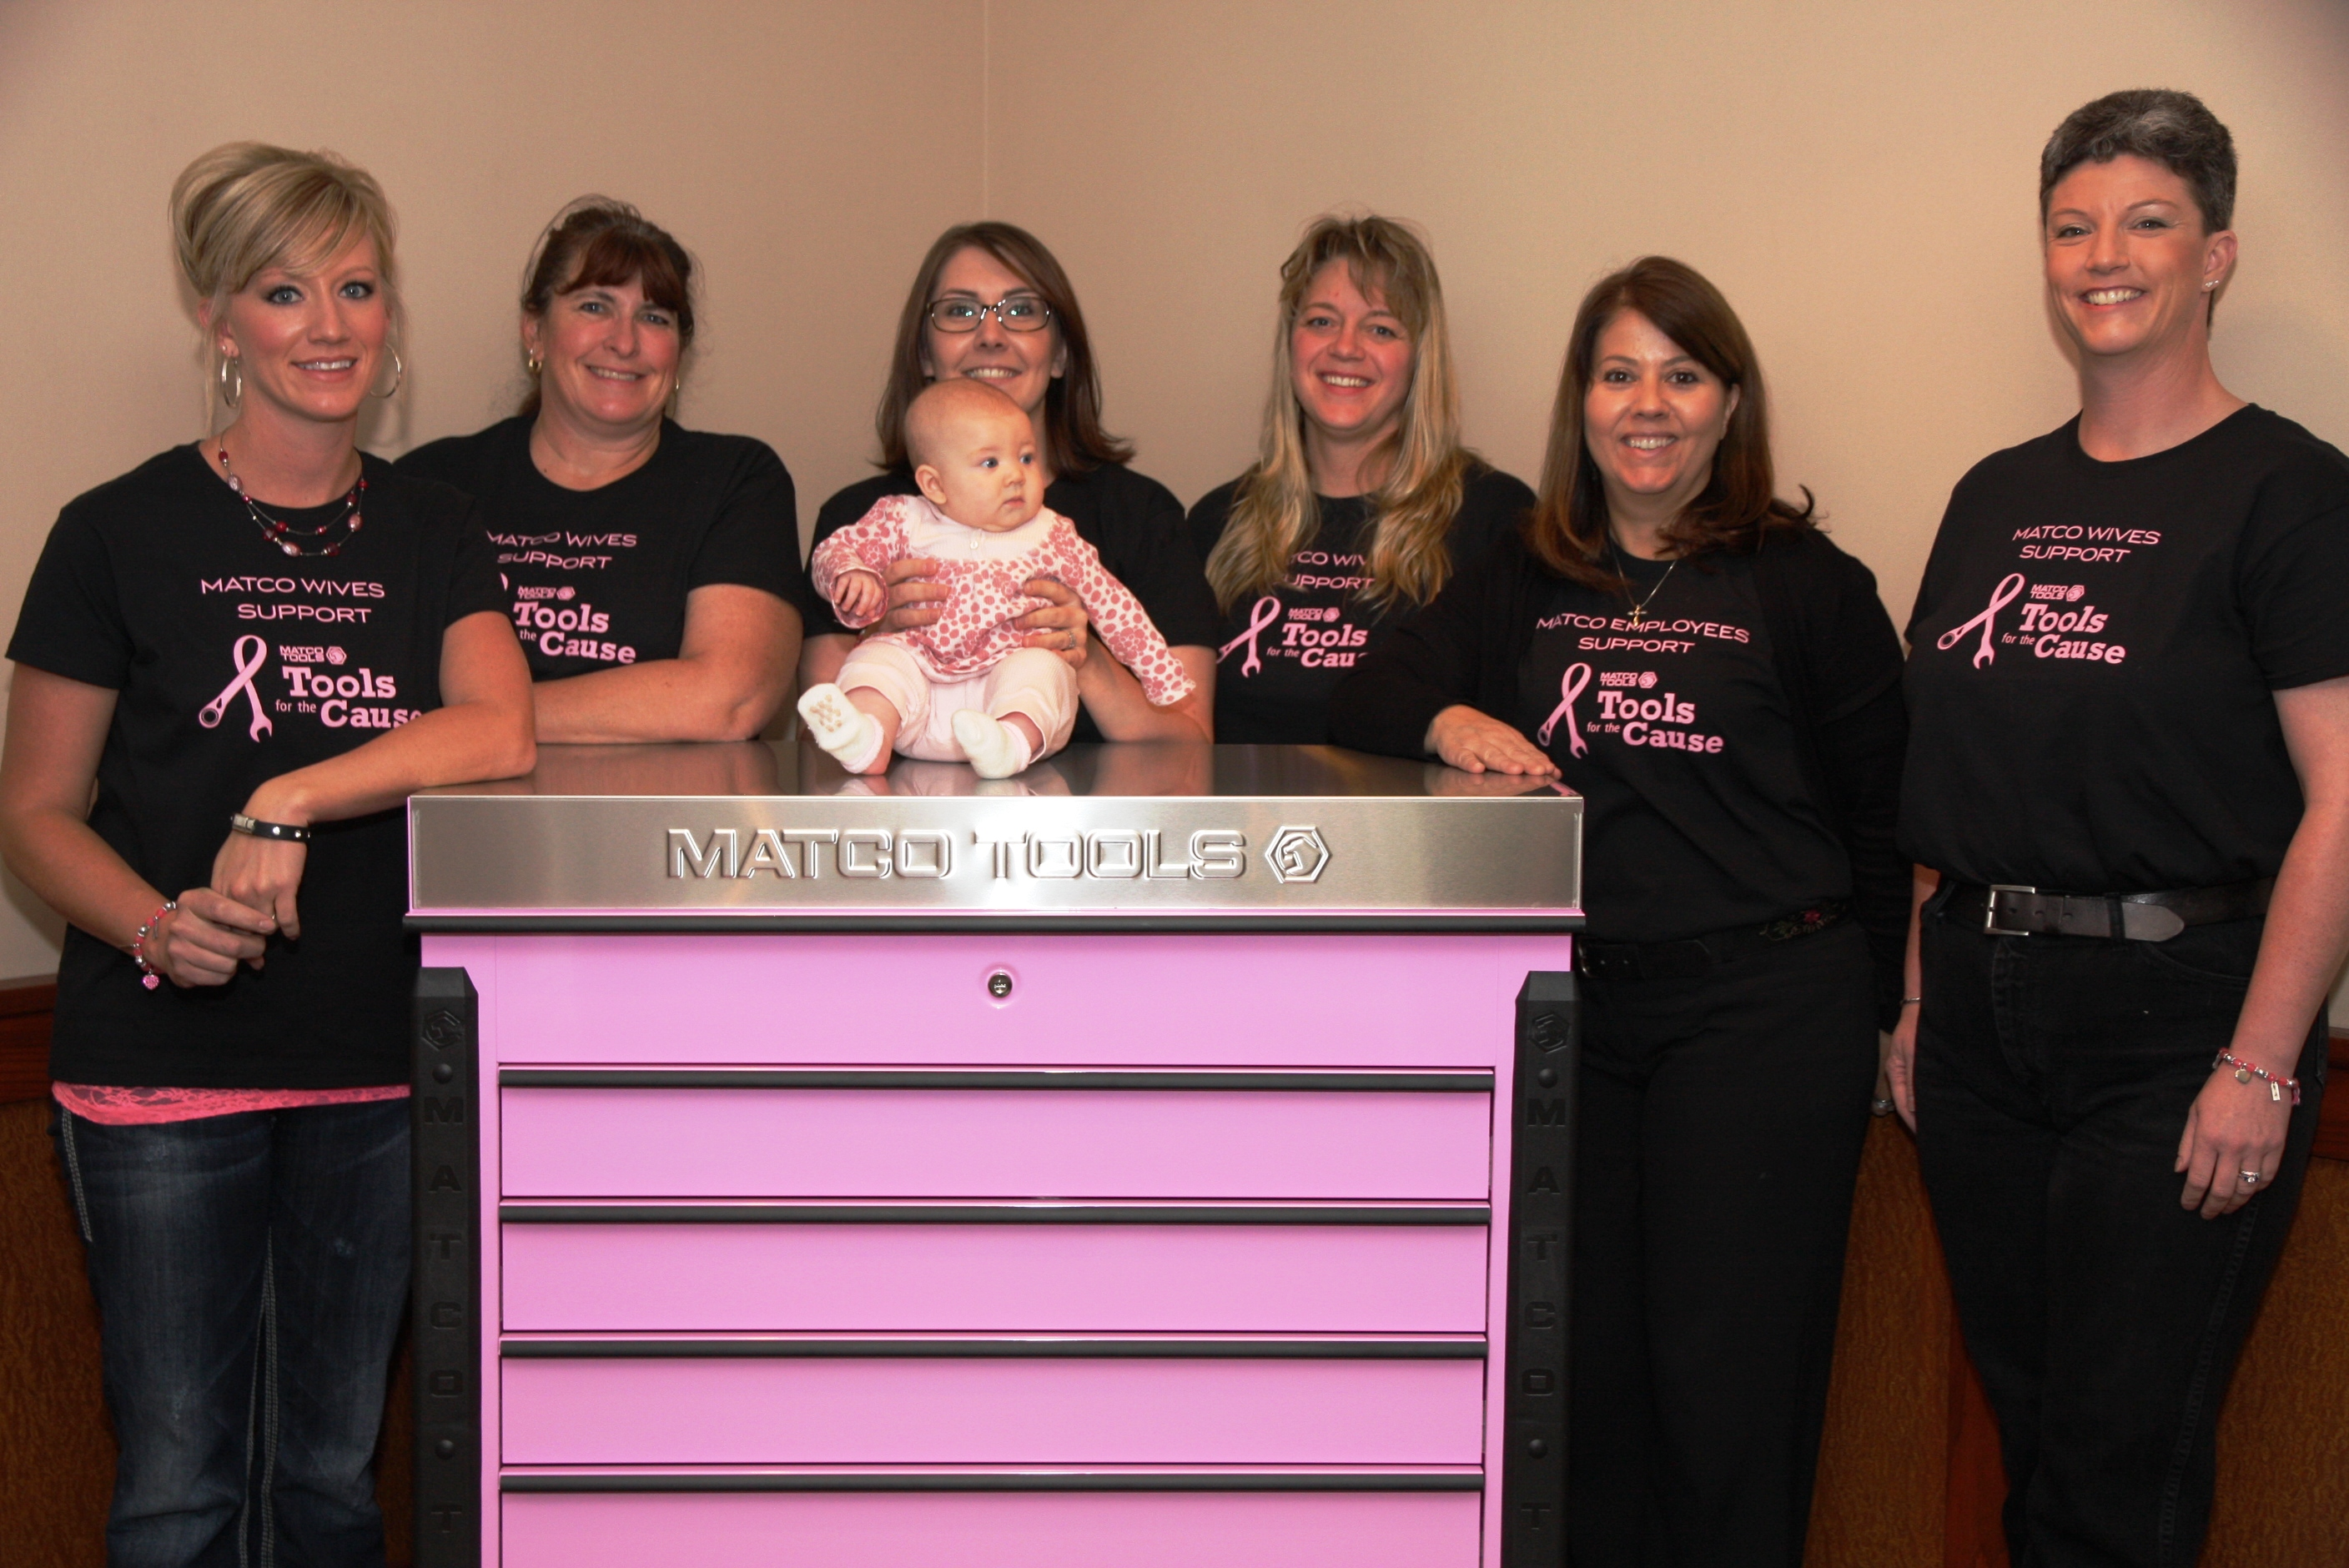 T shirt design reno nv - Matco Wives Support Tools For The Cause T Shirt Photo